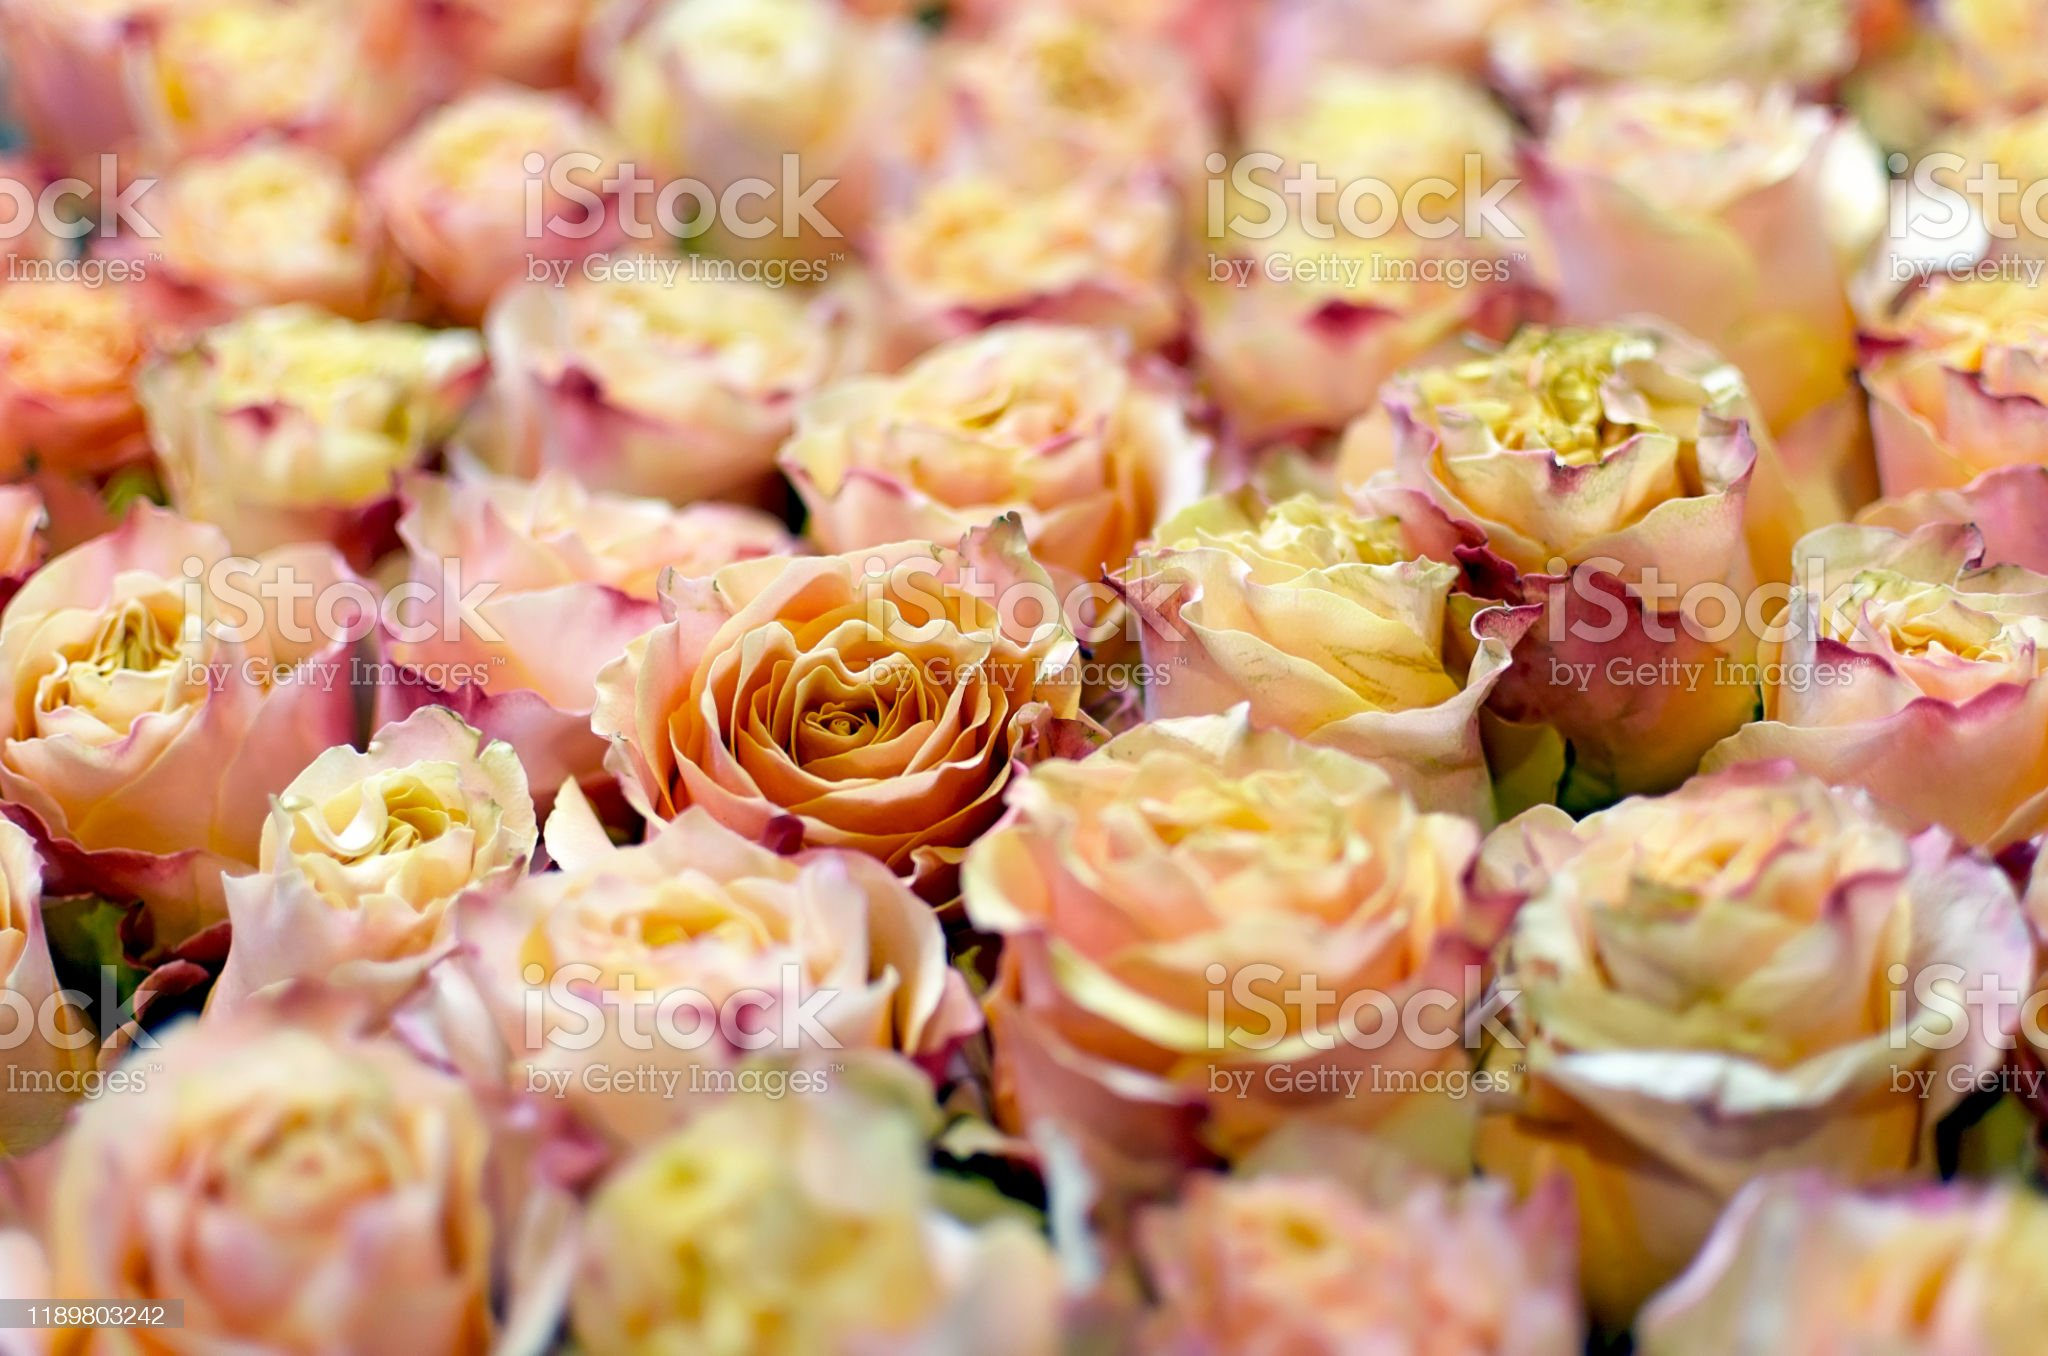 pink-roses-picture-id1189803242?s=2048x2